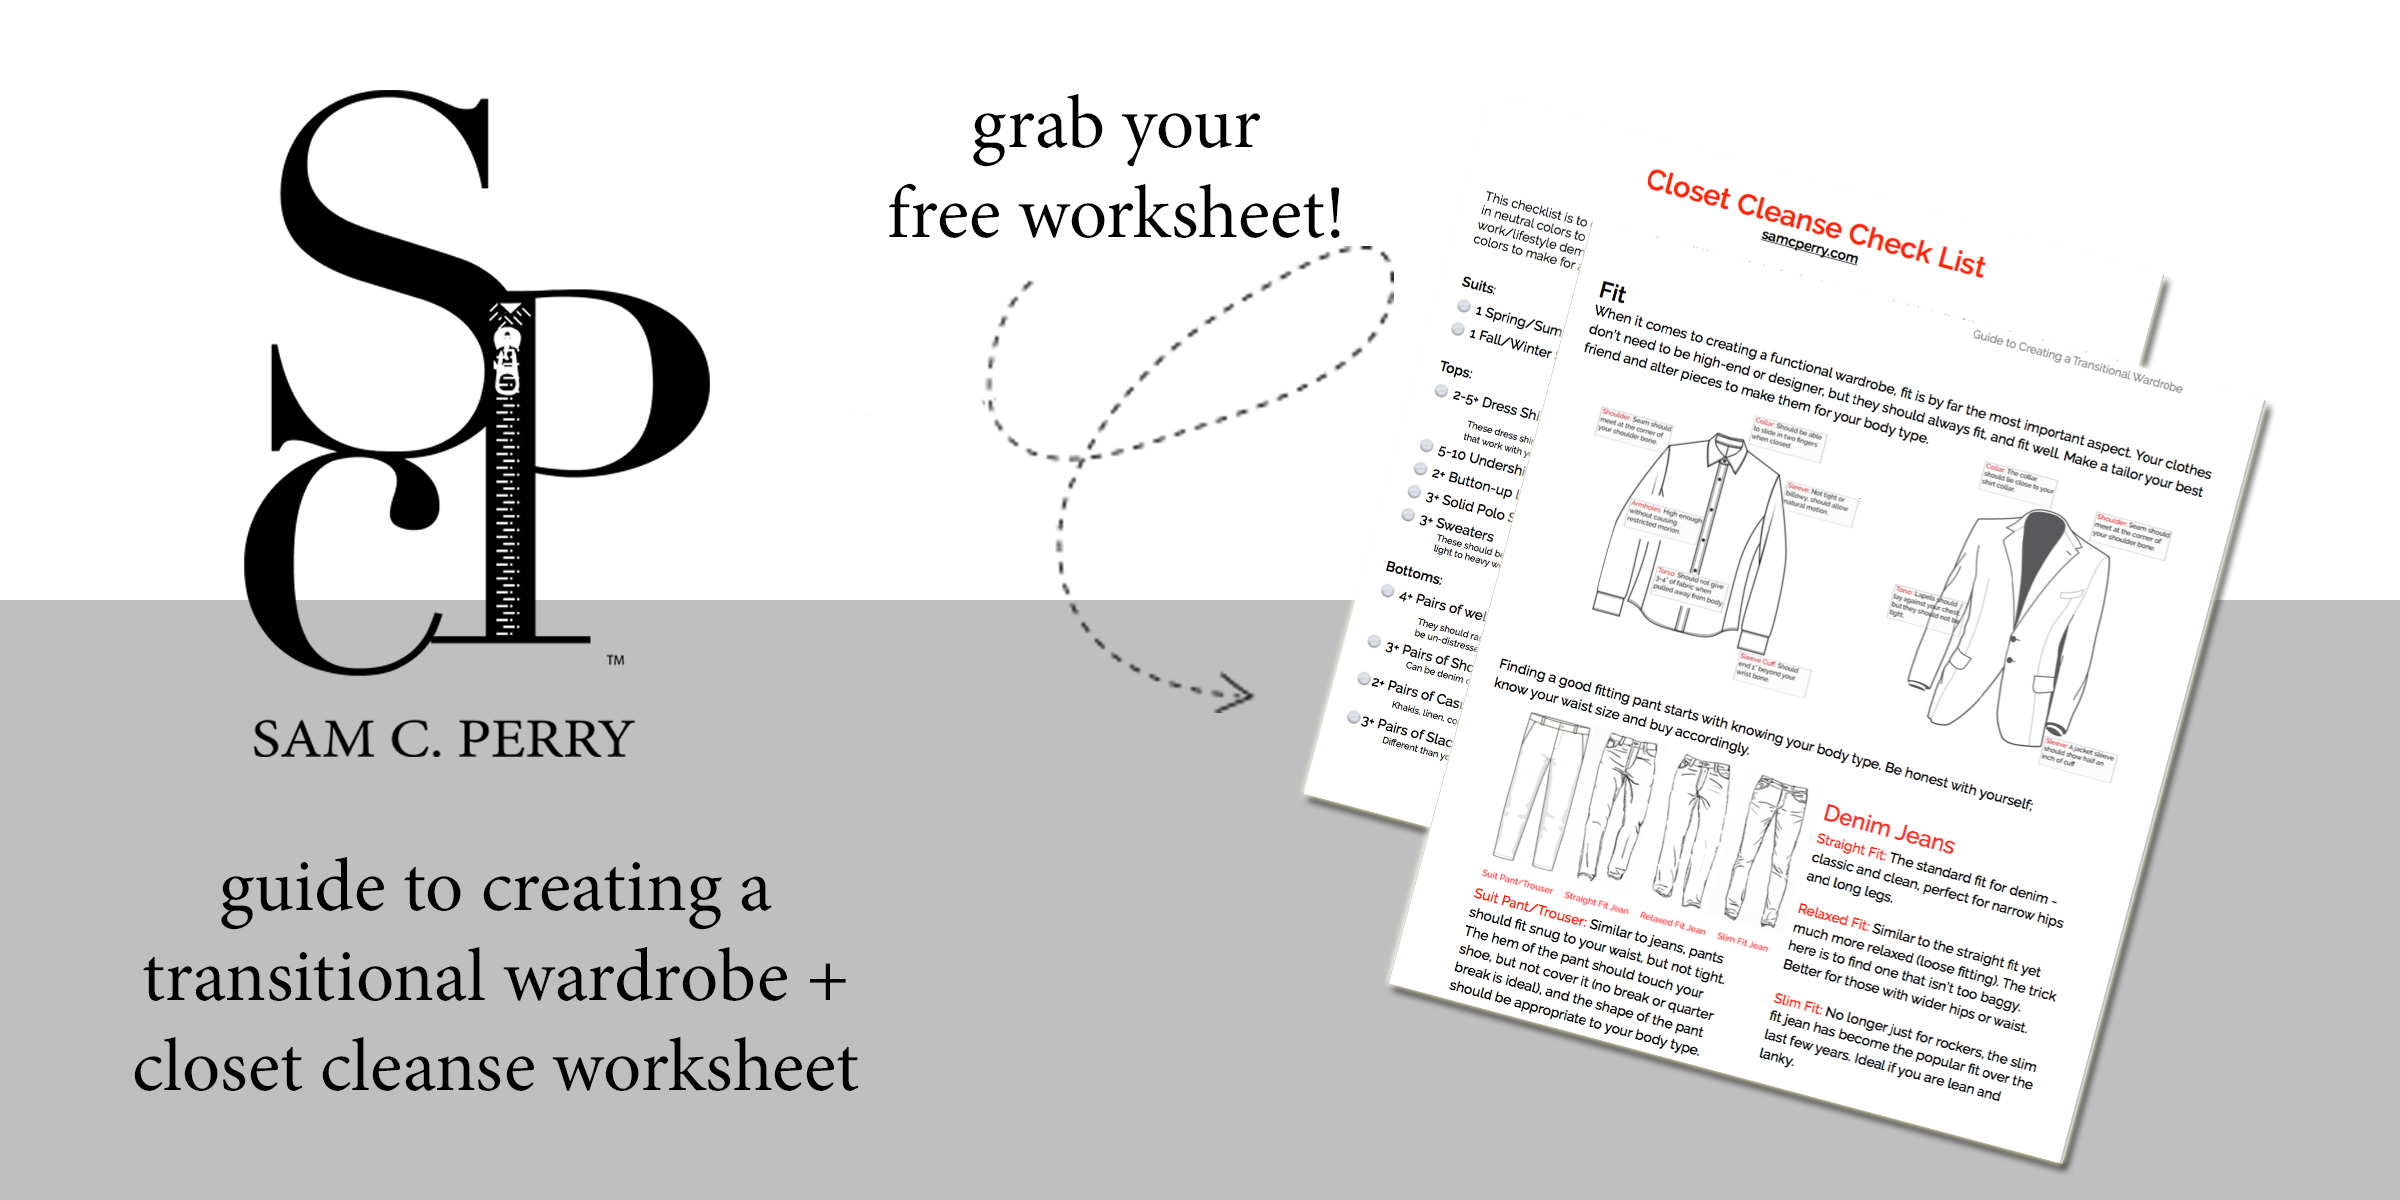 sam-c-perry-guide-to-creating-a-transitional-wardrobe-closet-cleanse-worksheet-graphic.jpg